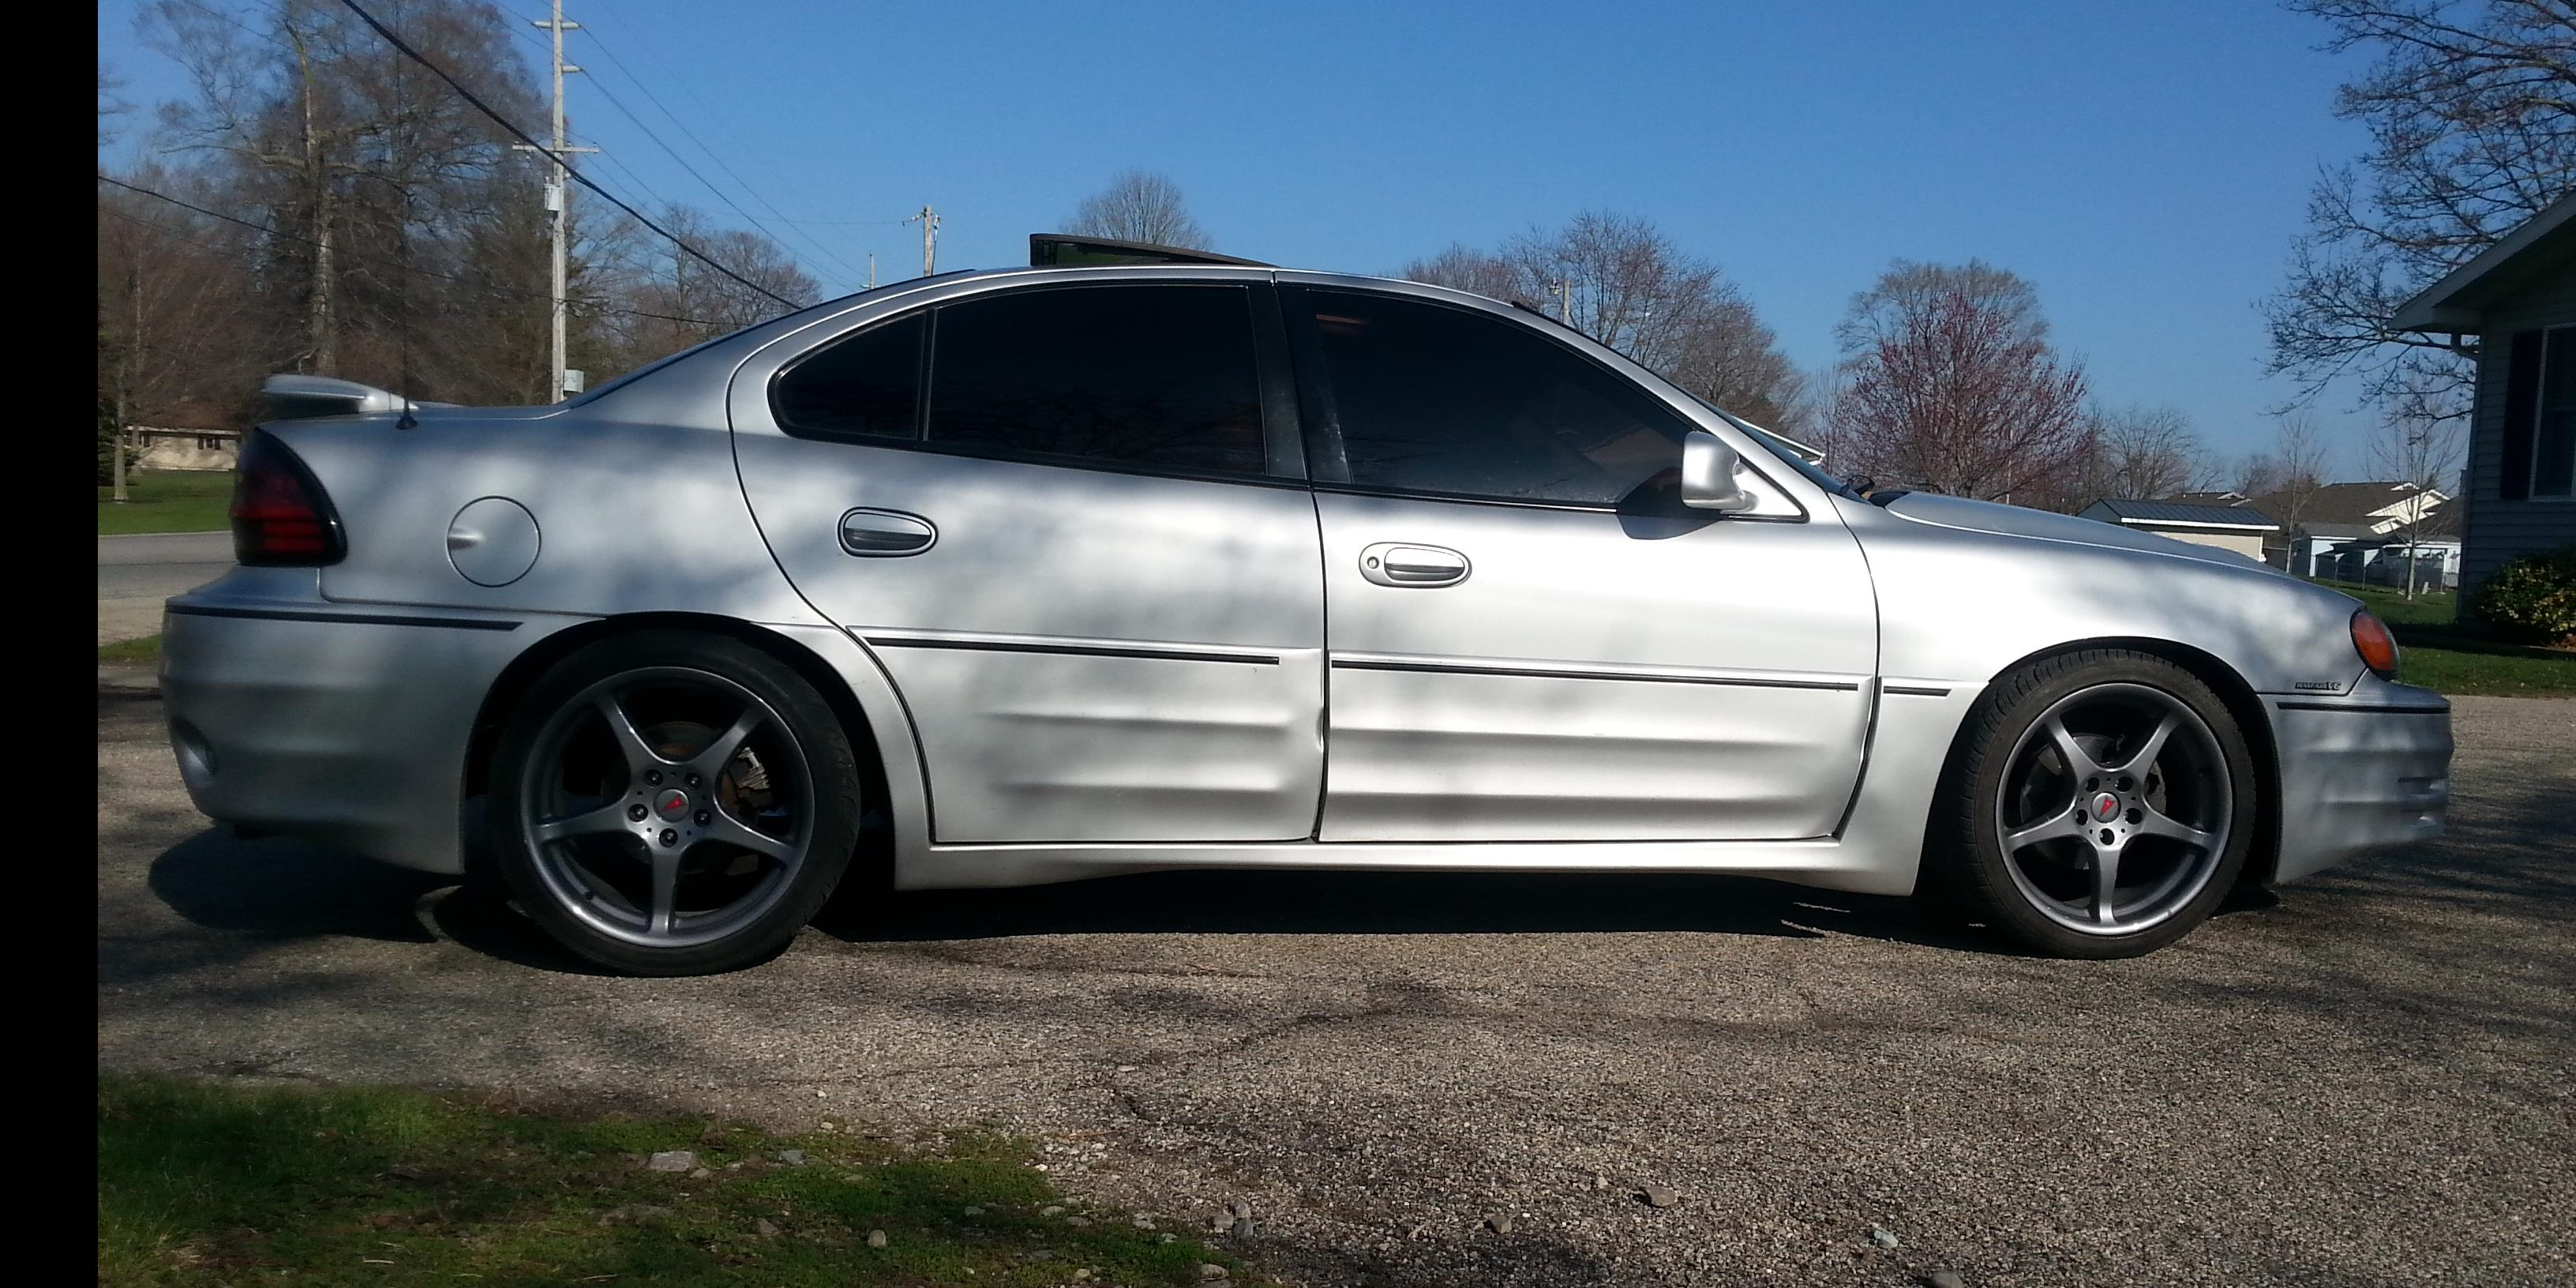 JordanKeck 2003 Pontiac Grand Am